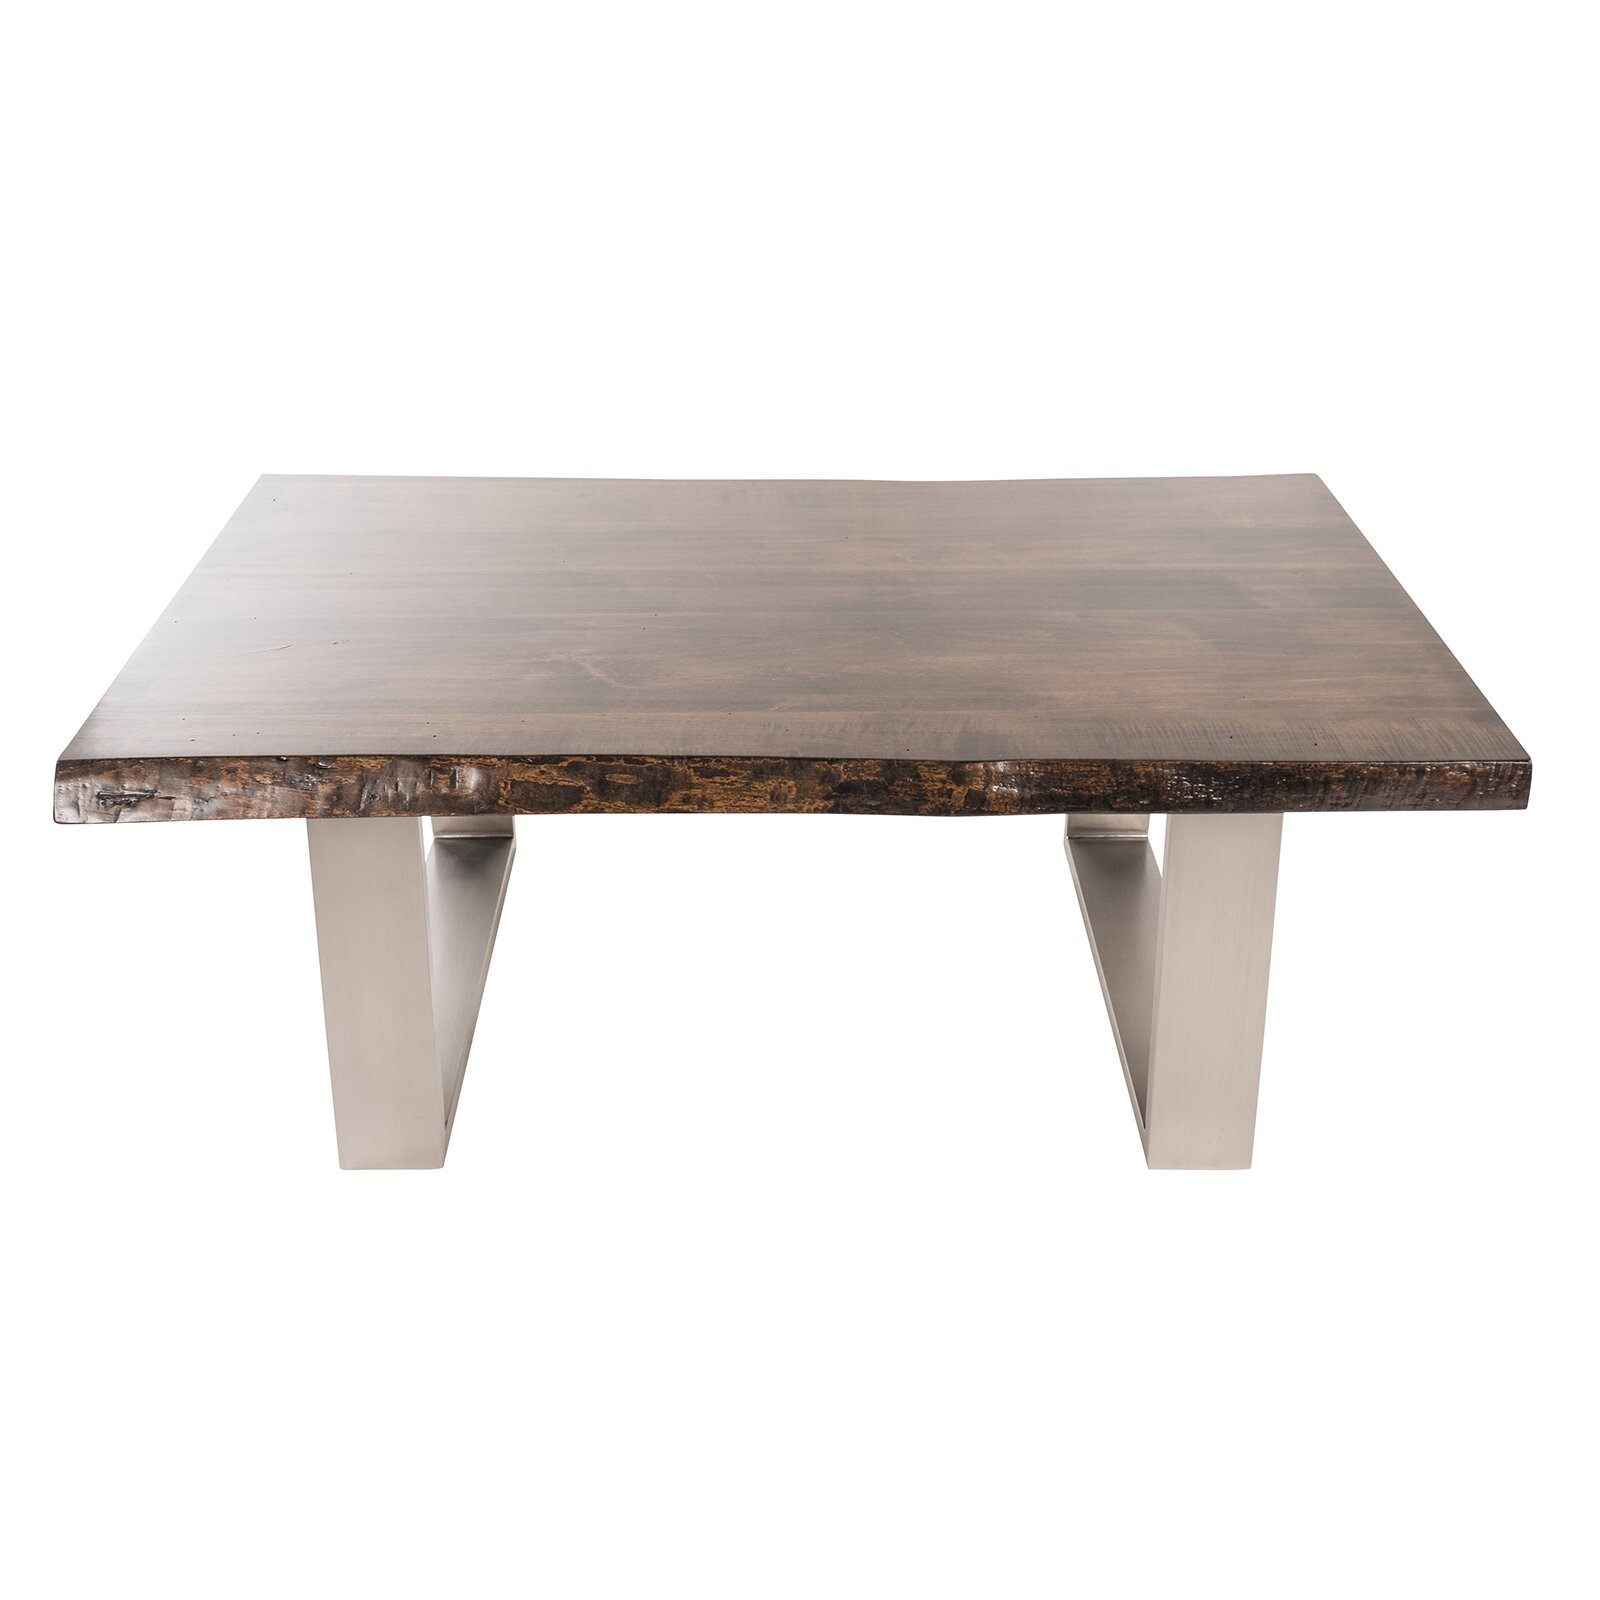 Joseph allen live edge coffee table wayfair for Table furniture